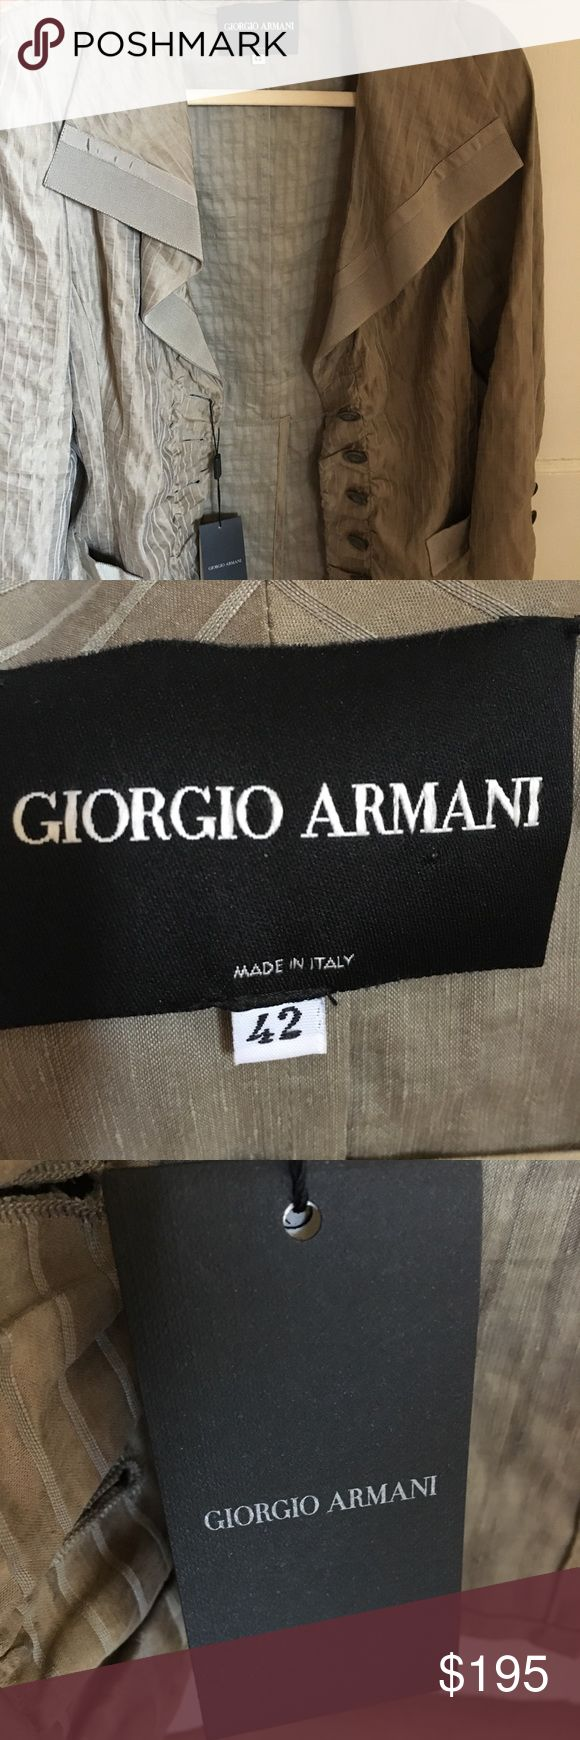 Armani Jacket Army green colored Armani jacket. Brand new with tags. In excellent condition. Beautiful details with mother of pearl buttons. Could be dressed up or dressed down with jeans and boots. Super cute jacket! Enjoy! Giorgio Armani Jackets & Coats Blazers